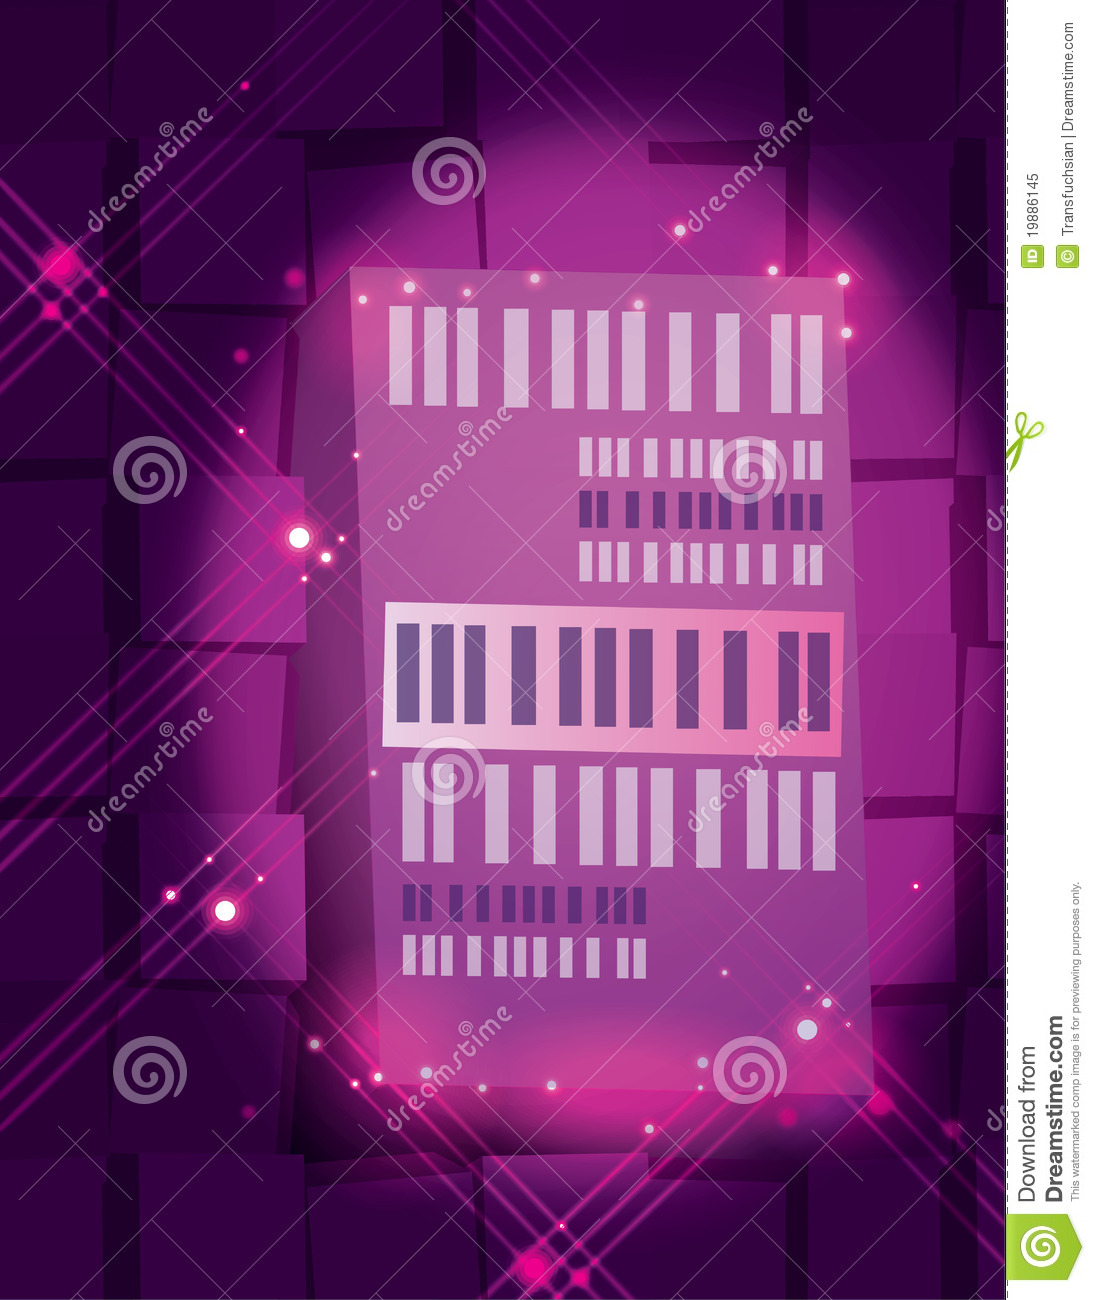 Shining cube club flyer background royalty free stock photo image 19886145 for Nightclub flyer background